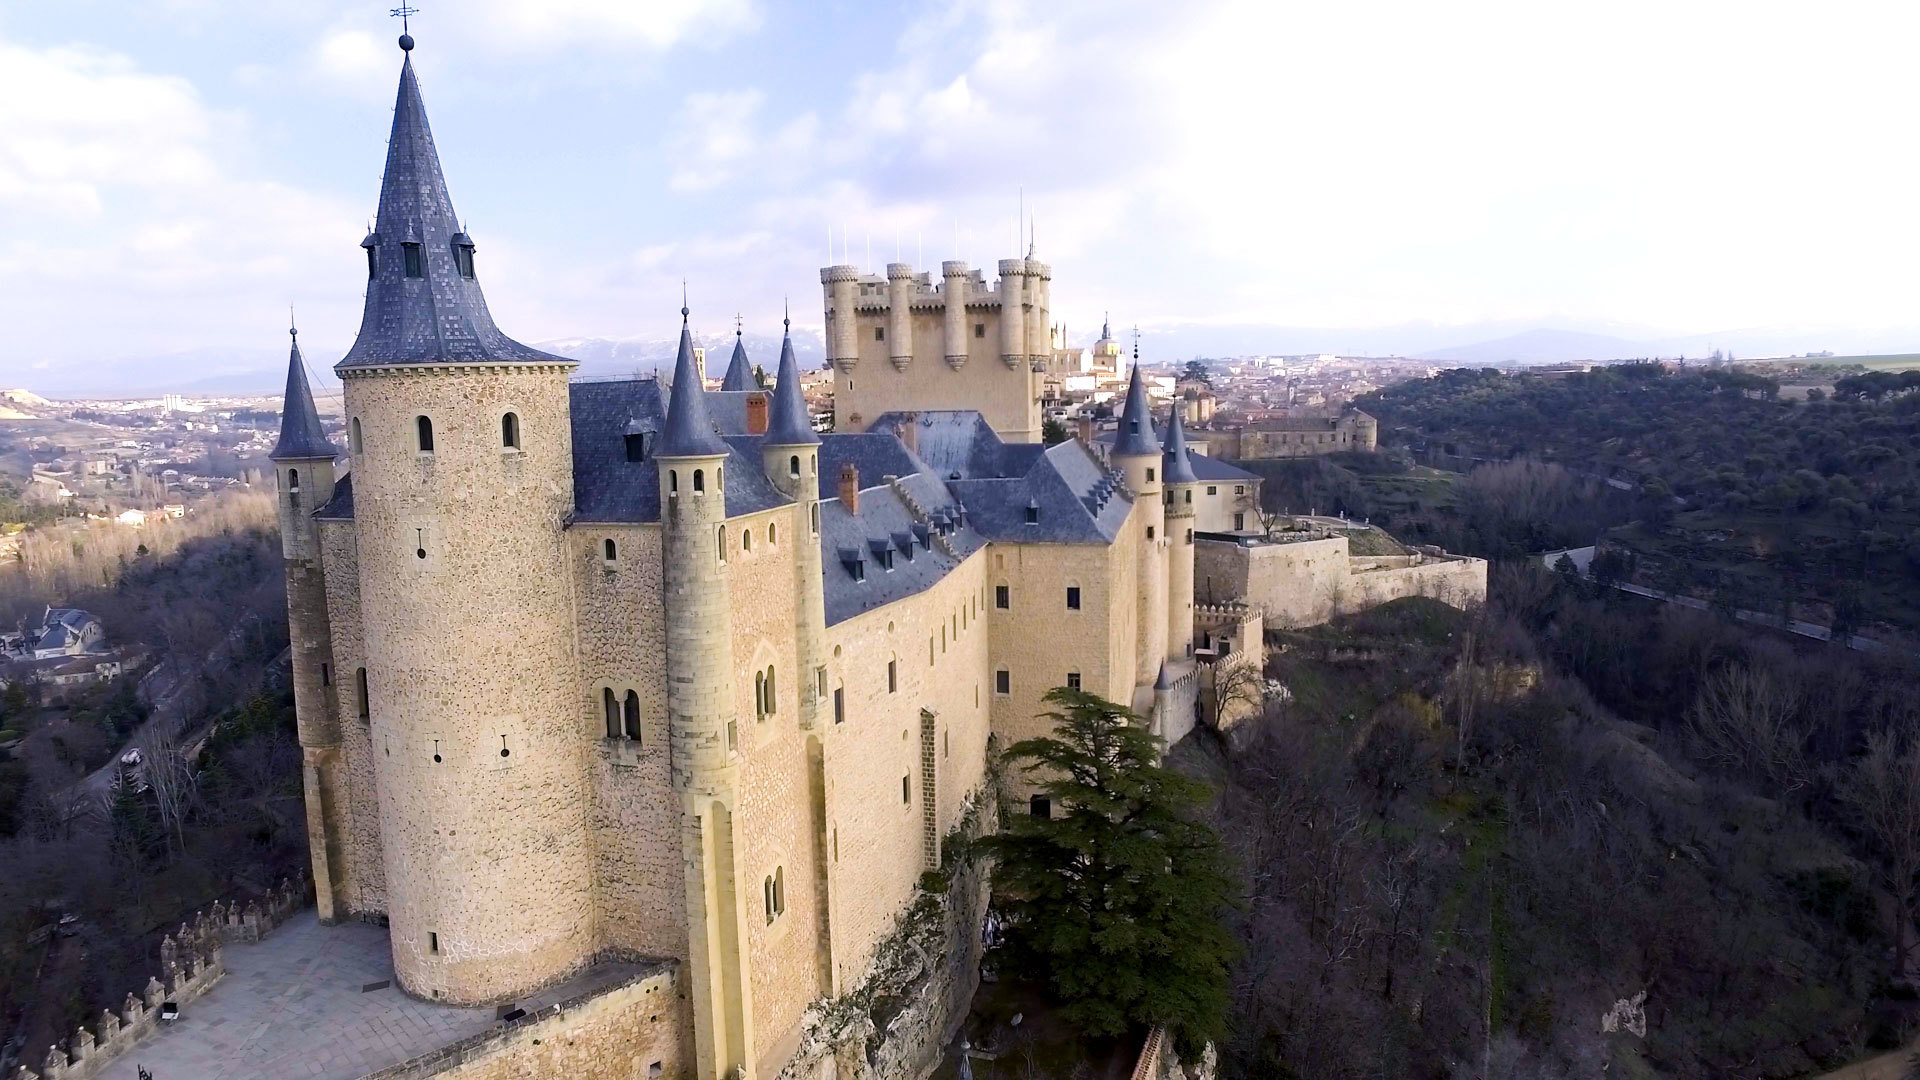 Great Big Story : The Spanish Castle That Inspired Walt Disney